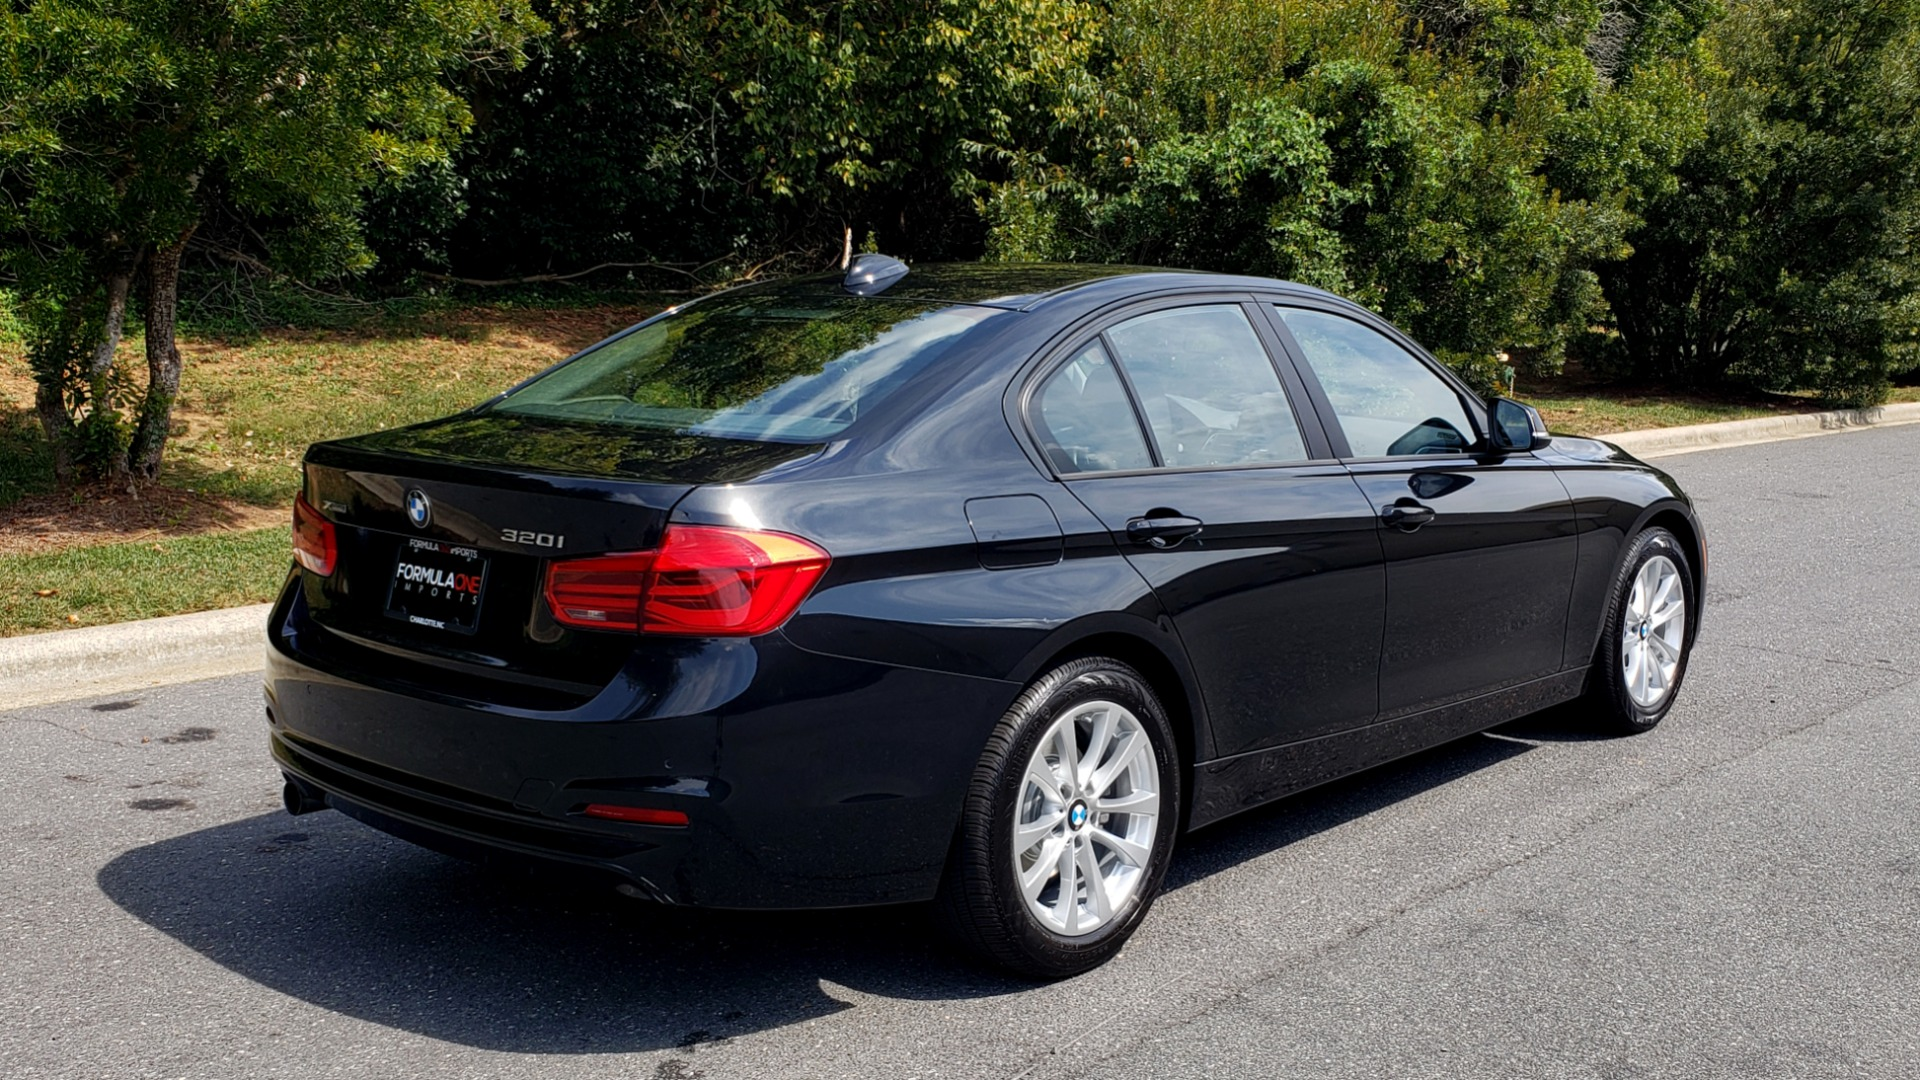 Used 2017 BMW 3 SERIES 320I XDRIVE / DRVR ASST / NAV / SUNROOF / HTD STS / REARVIEW for sale $21,995 at Formula Imports in Charlotte NC 28227 6